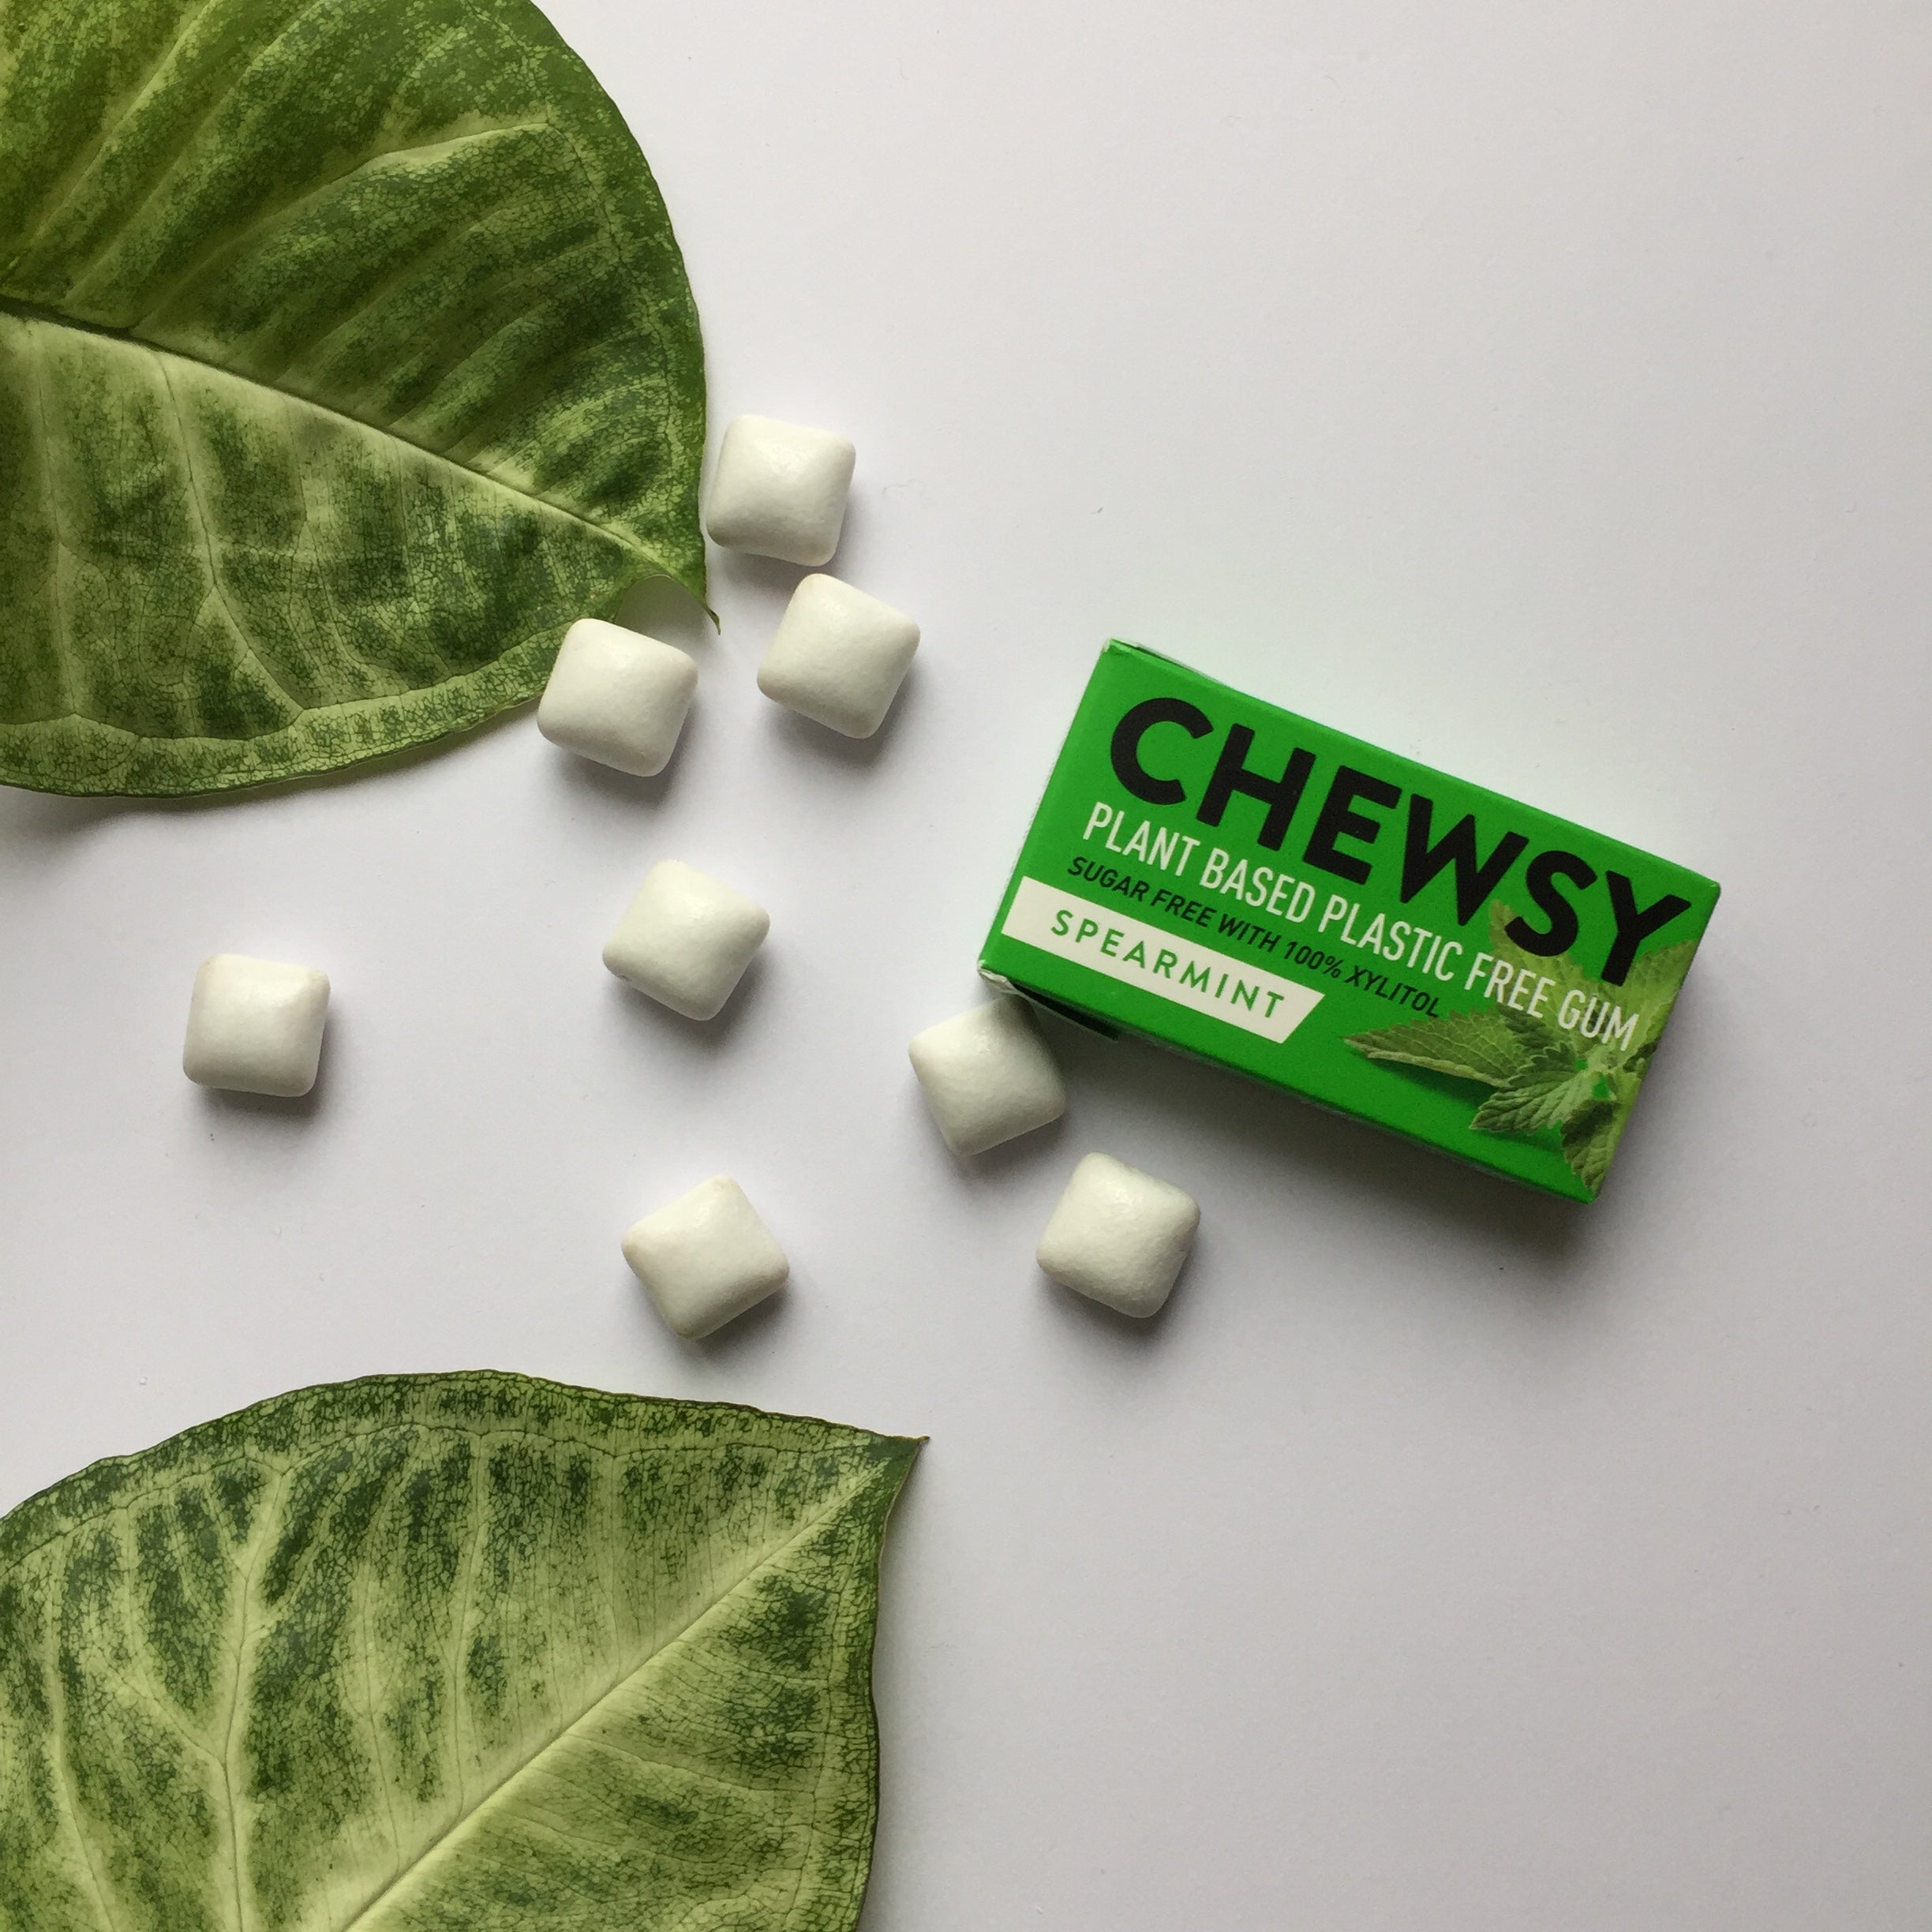 Plastic Free Gum - The Weekly Shop | Plastic Free Online Shop